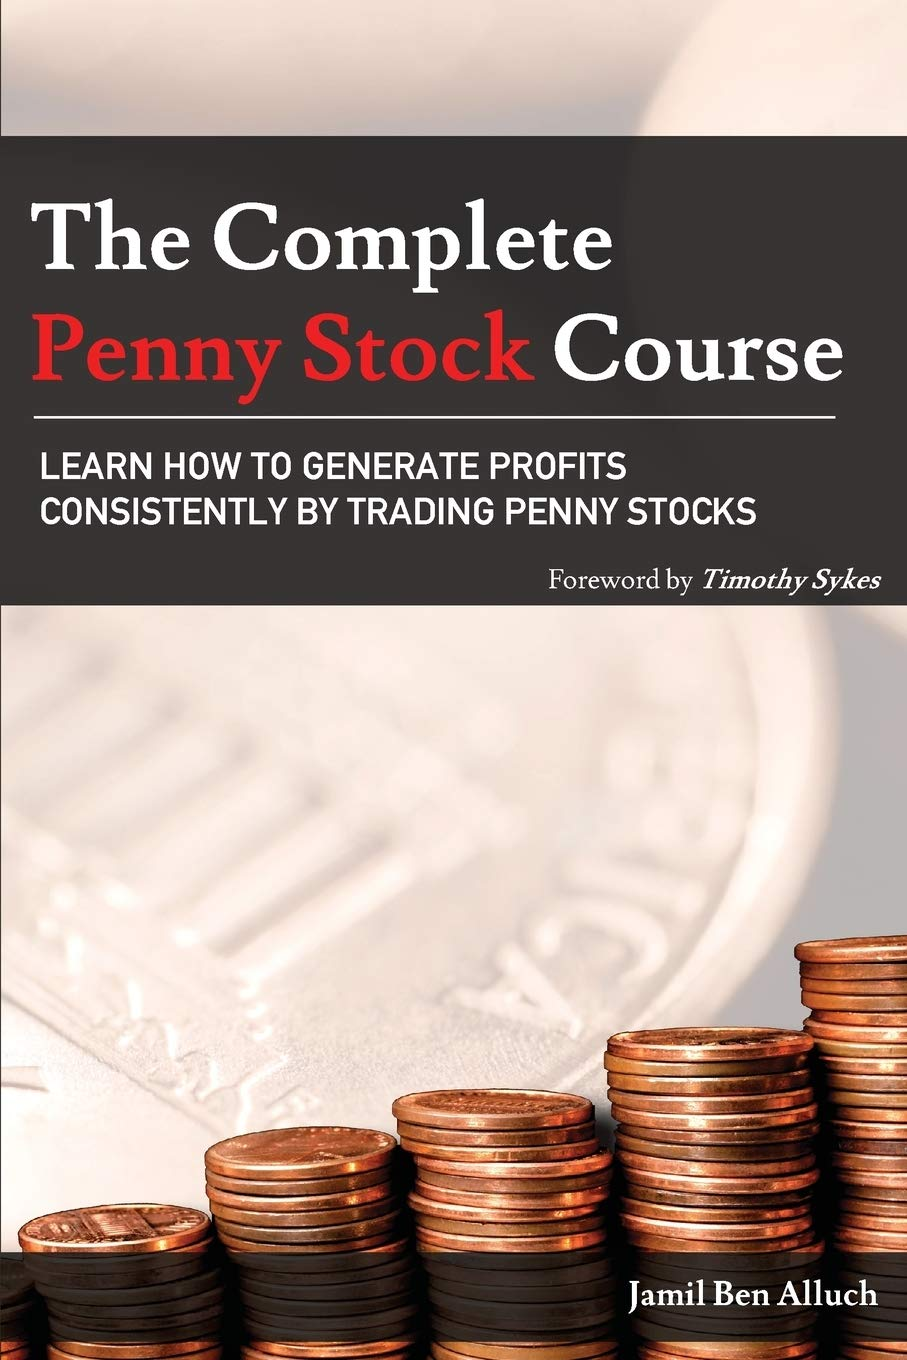 The Complete Penny Stock Course: Learn How To Generate